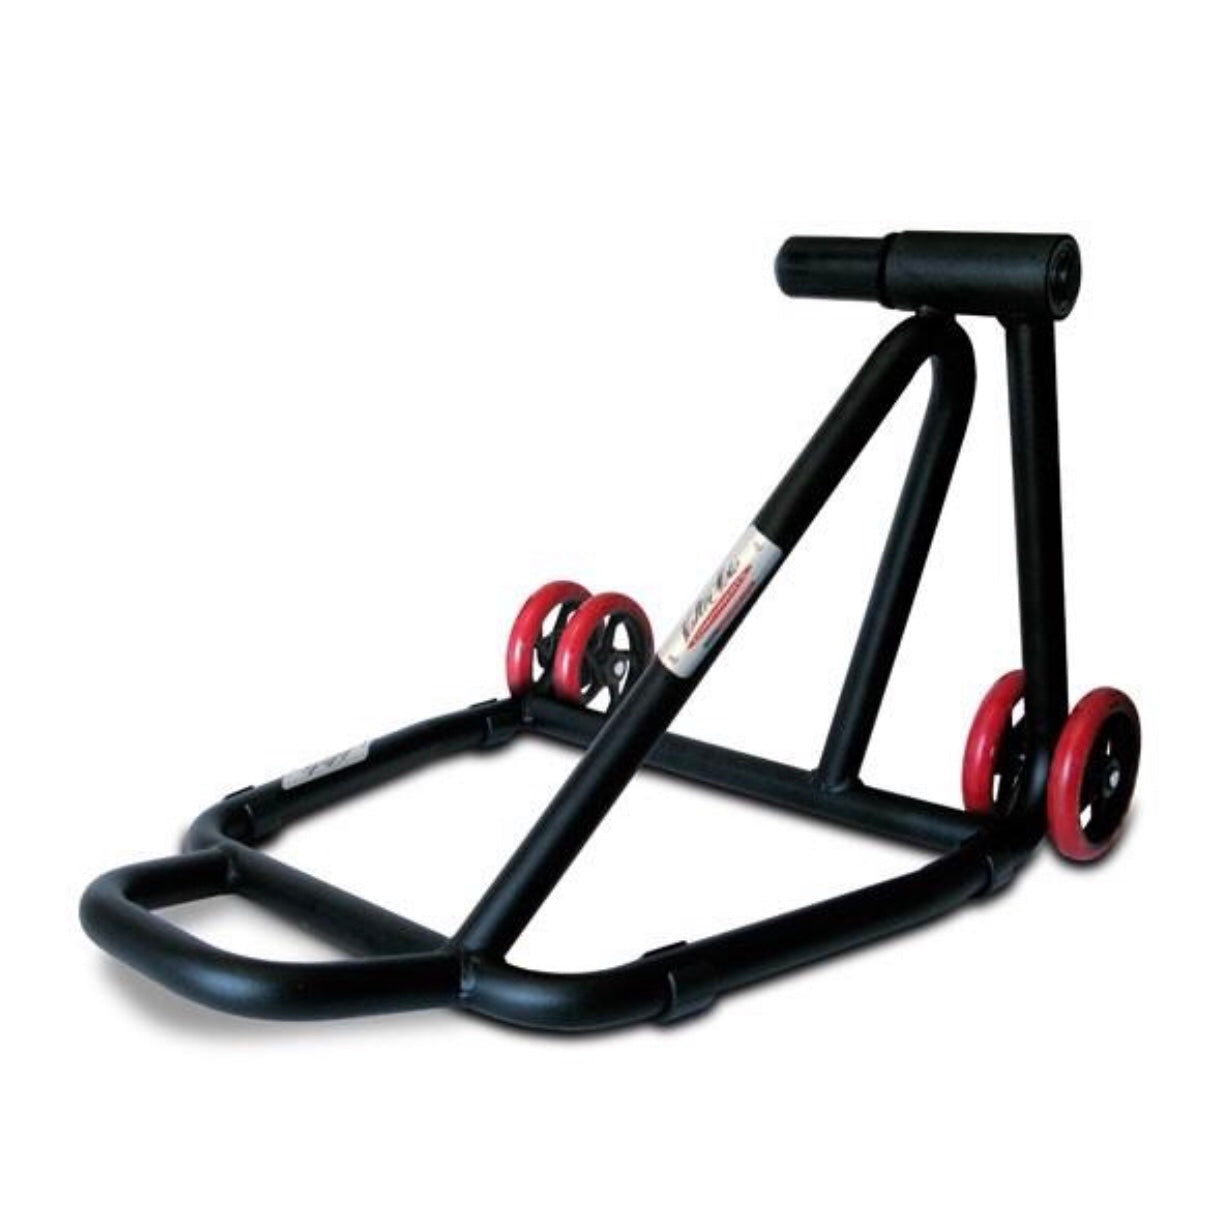 Valtermoto Components single sided rear stand